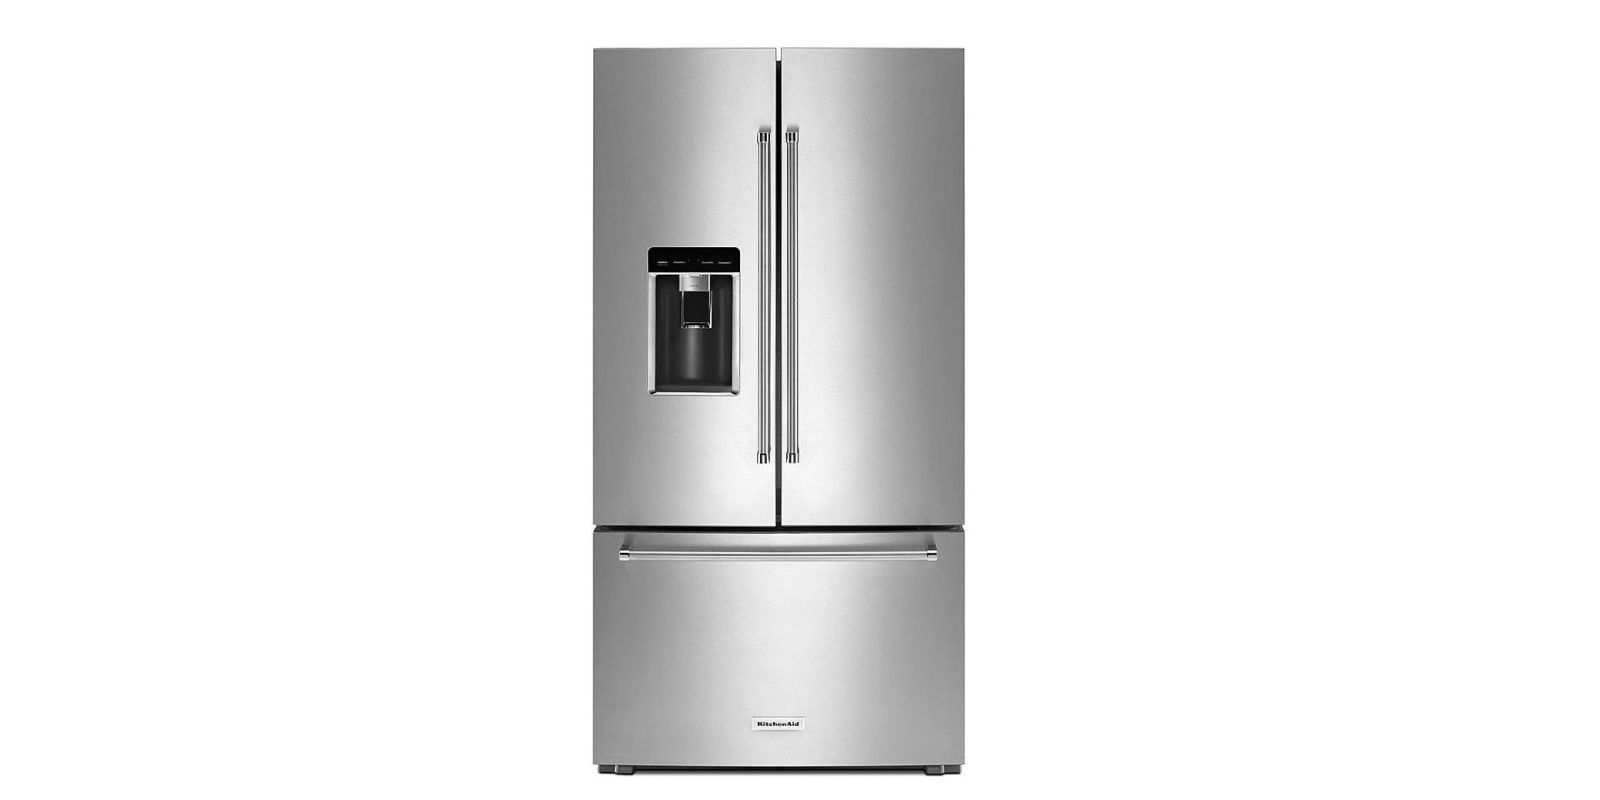 Charming KitchenAid 23.8 Cu. Ft. French Door Platinum Interior Refrigerator  KRFC704FPS Review, Price And Features U2013 Pros And Cons Of KitchenAid 23.8  Cu. Ft.